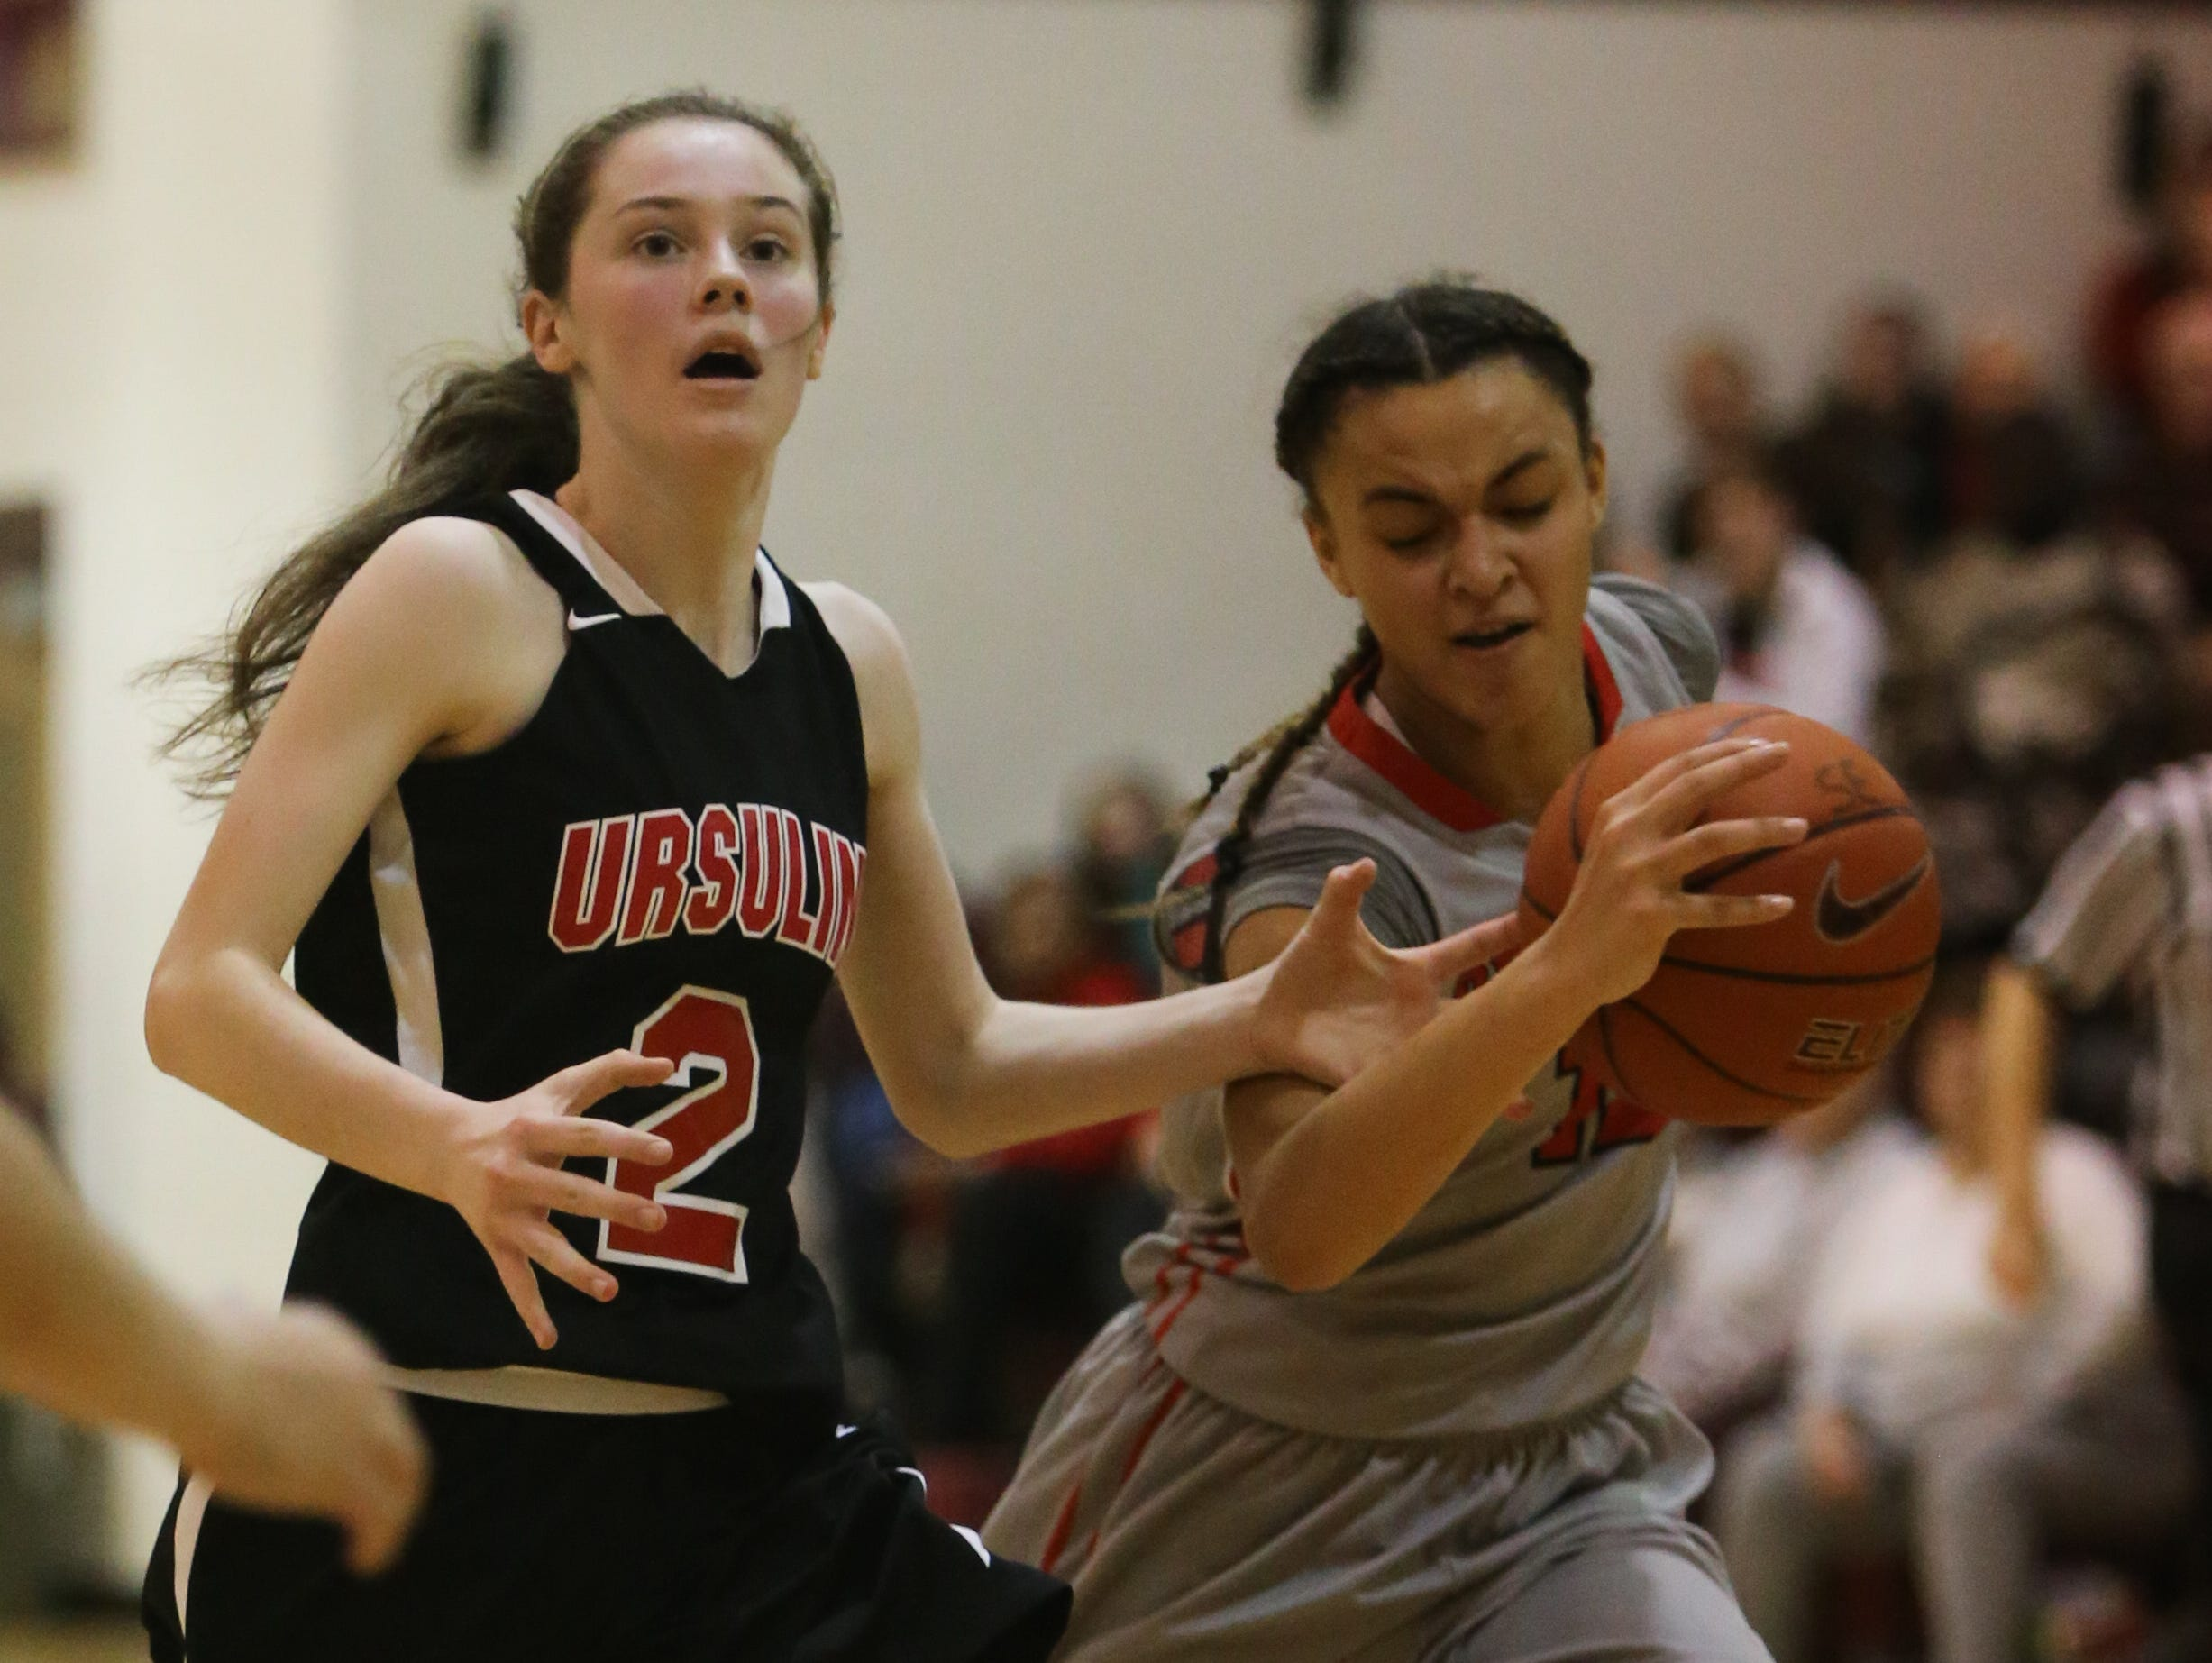 Long Island Lutheran guard Celeste Taylor steals the ball from Ursuline guard Maggie Connolly in the third quarter. Ursuline falls to Long Island Lutheran 52-55 in the semifinals of the Saint Francis Healthcare Cup of the Diamond State Classic at St. Elizabeth High School Tuesday.